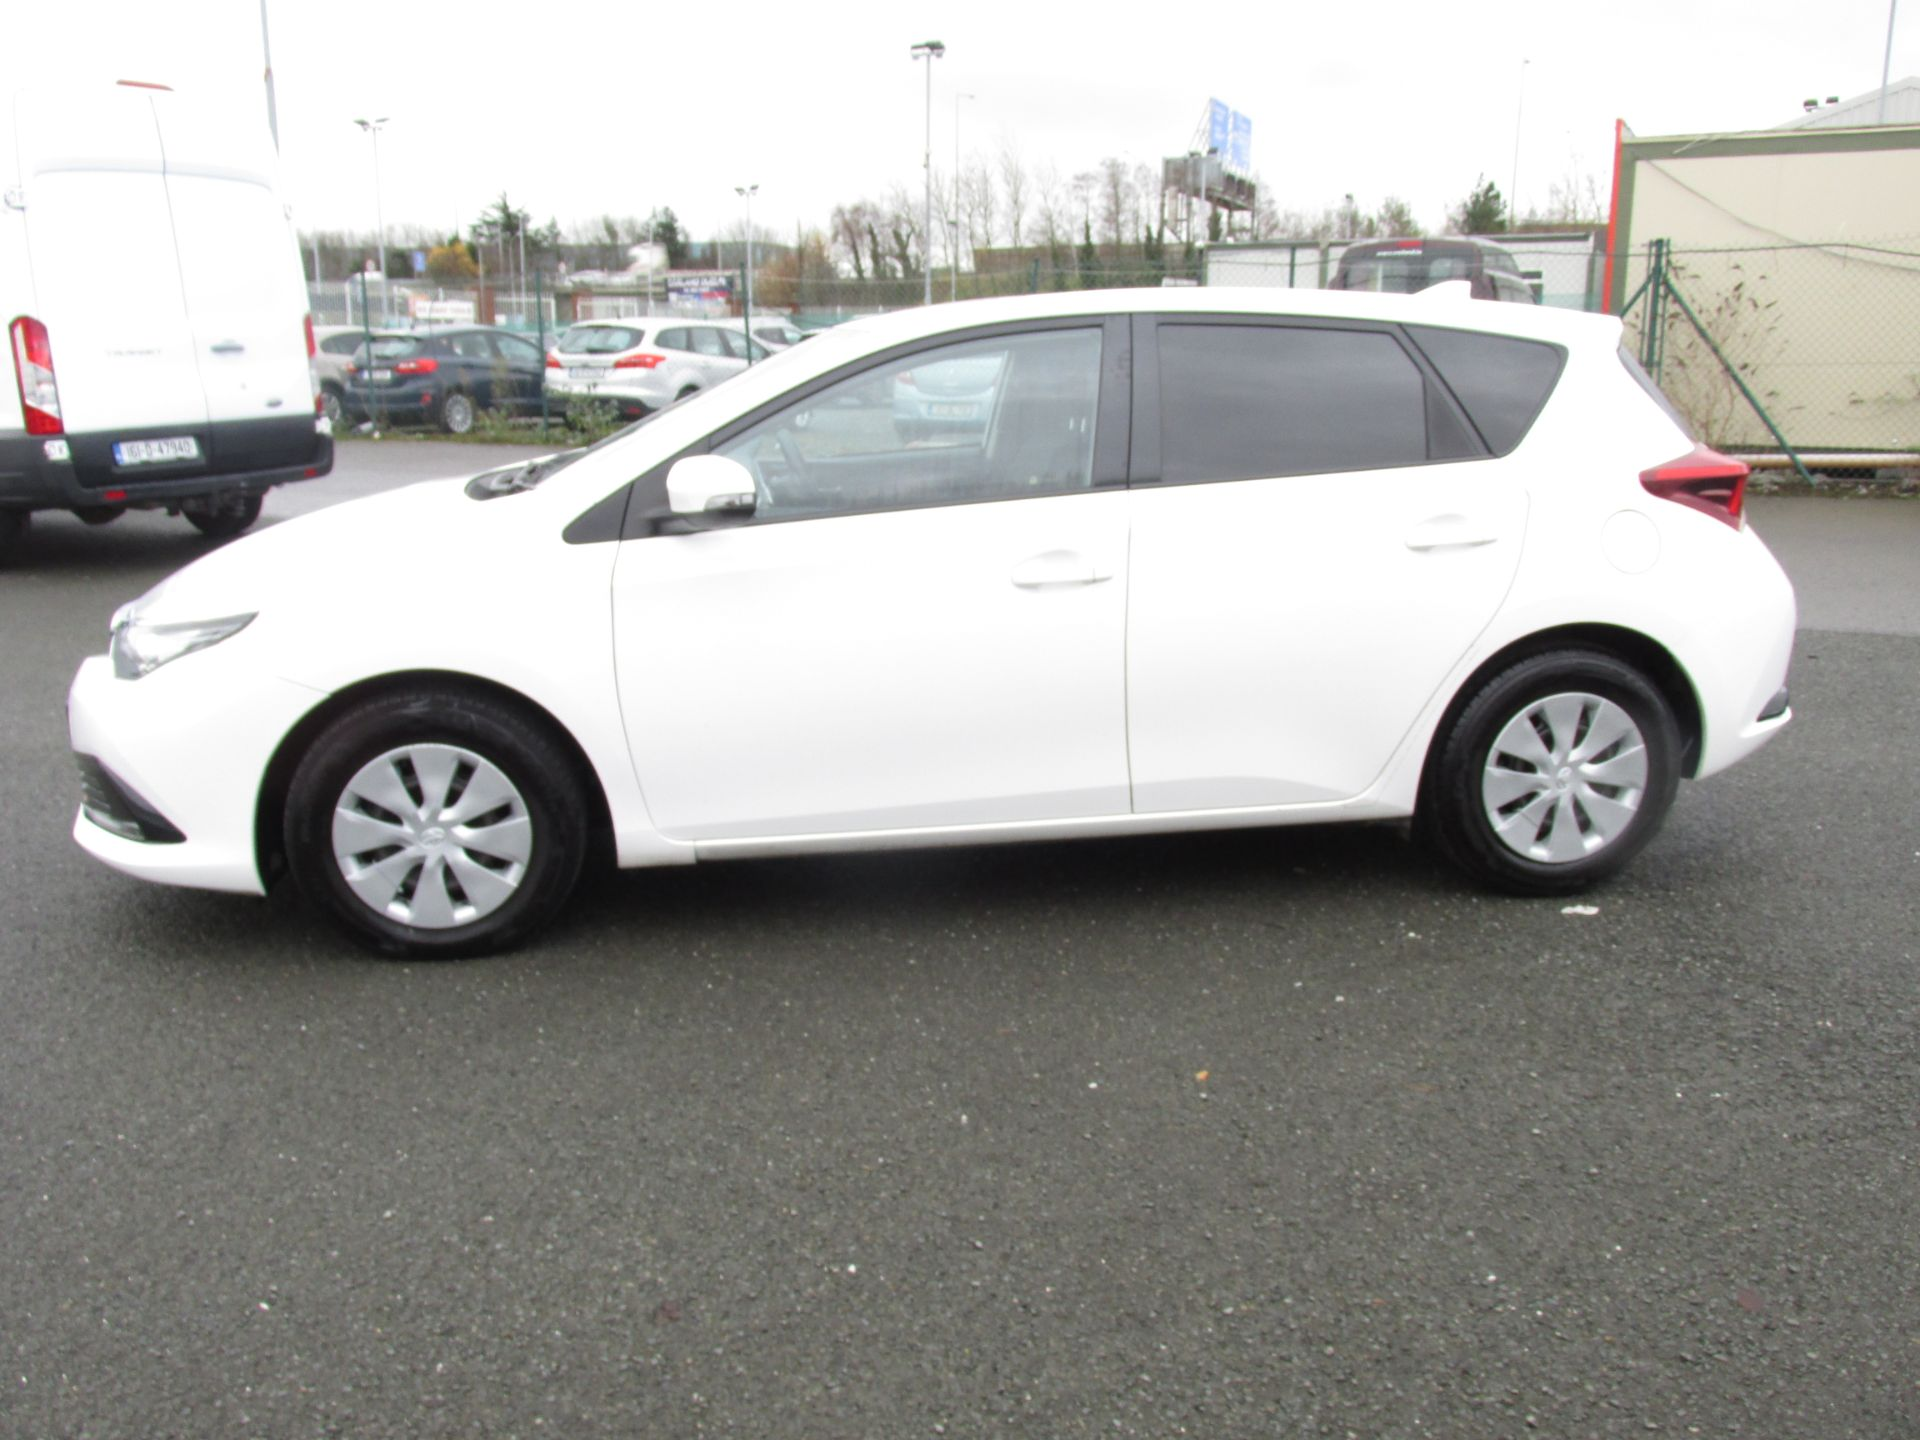 2016 Toyota Auris 1.4d-4d Terra 4DR click and deliver call sales for more info (162D20564) Image 4